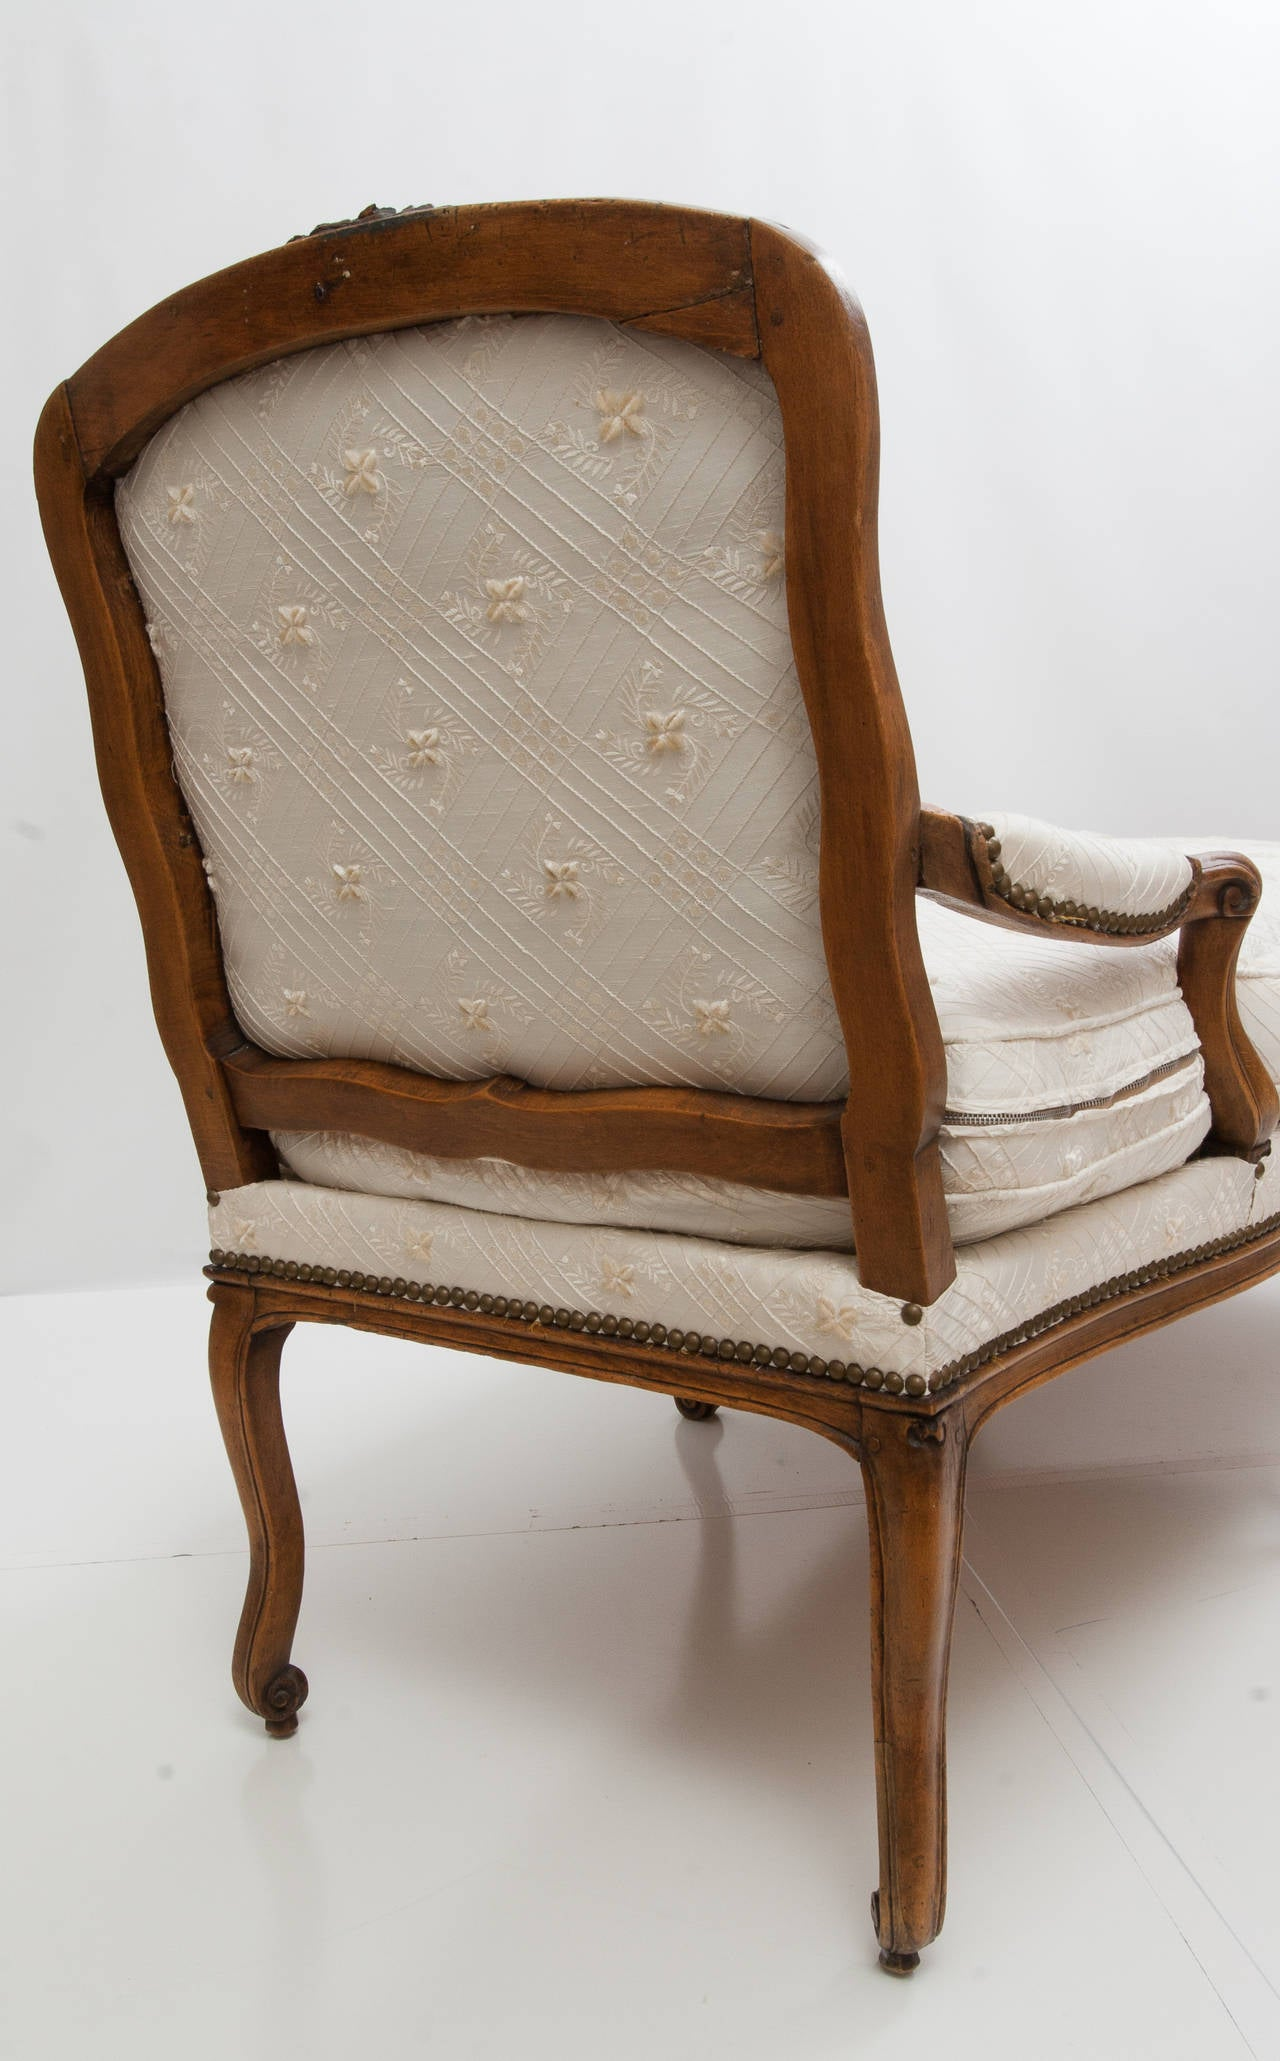 French antique louis xv style chaise lounge for sale at for Antique style chaise lounge